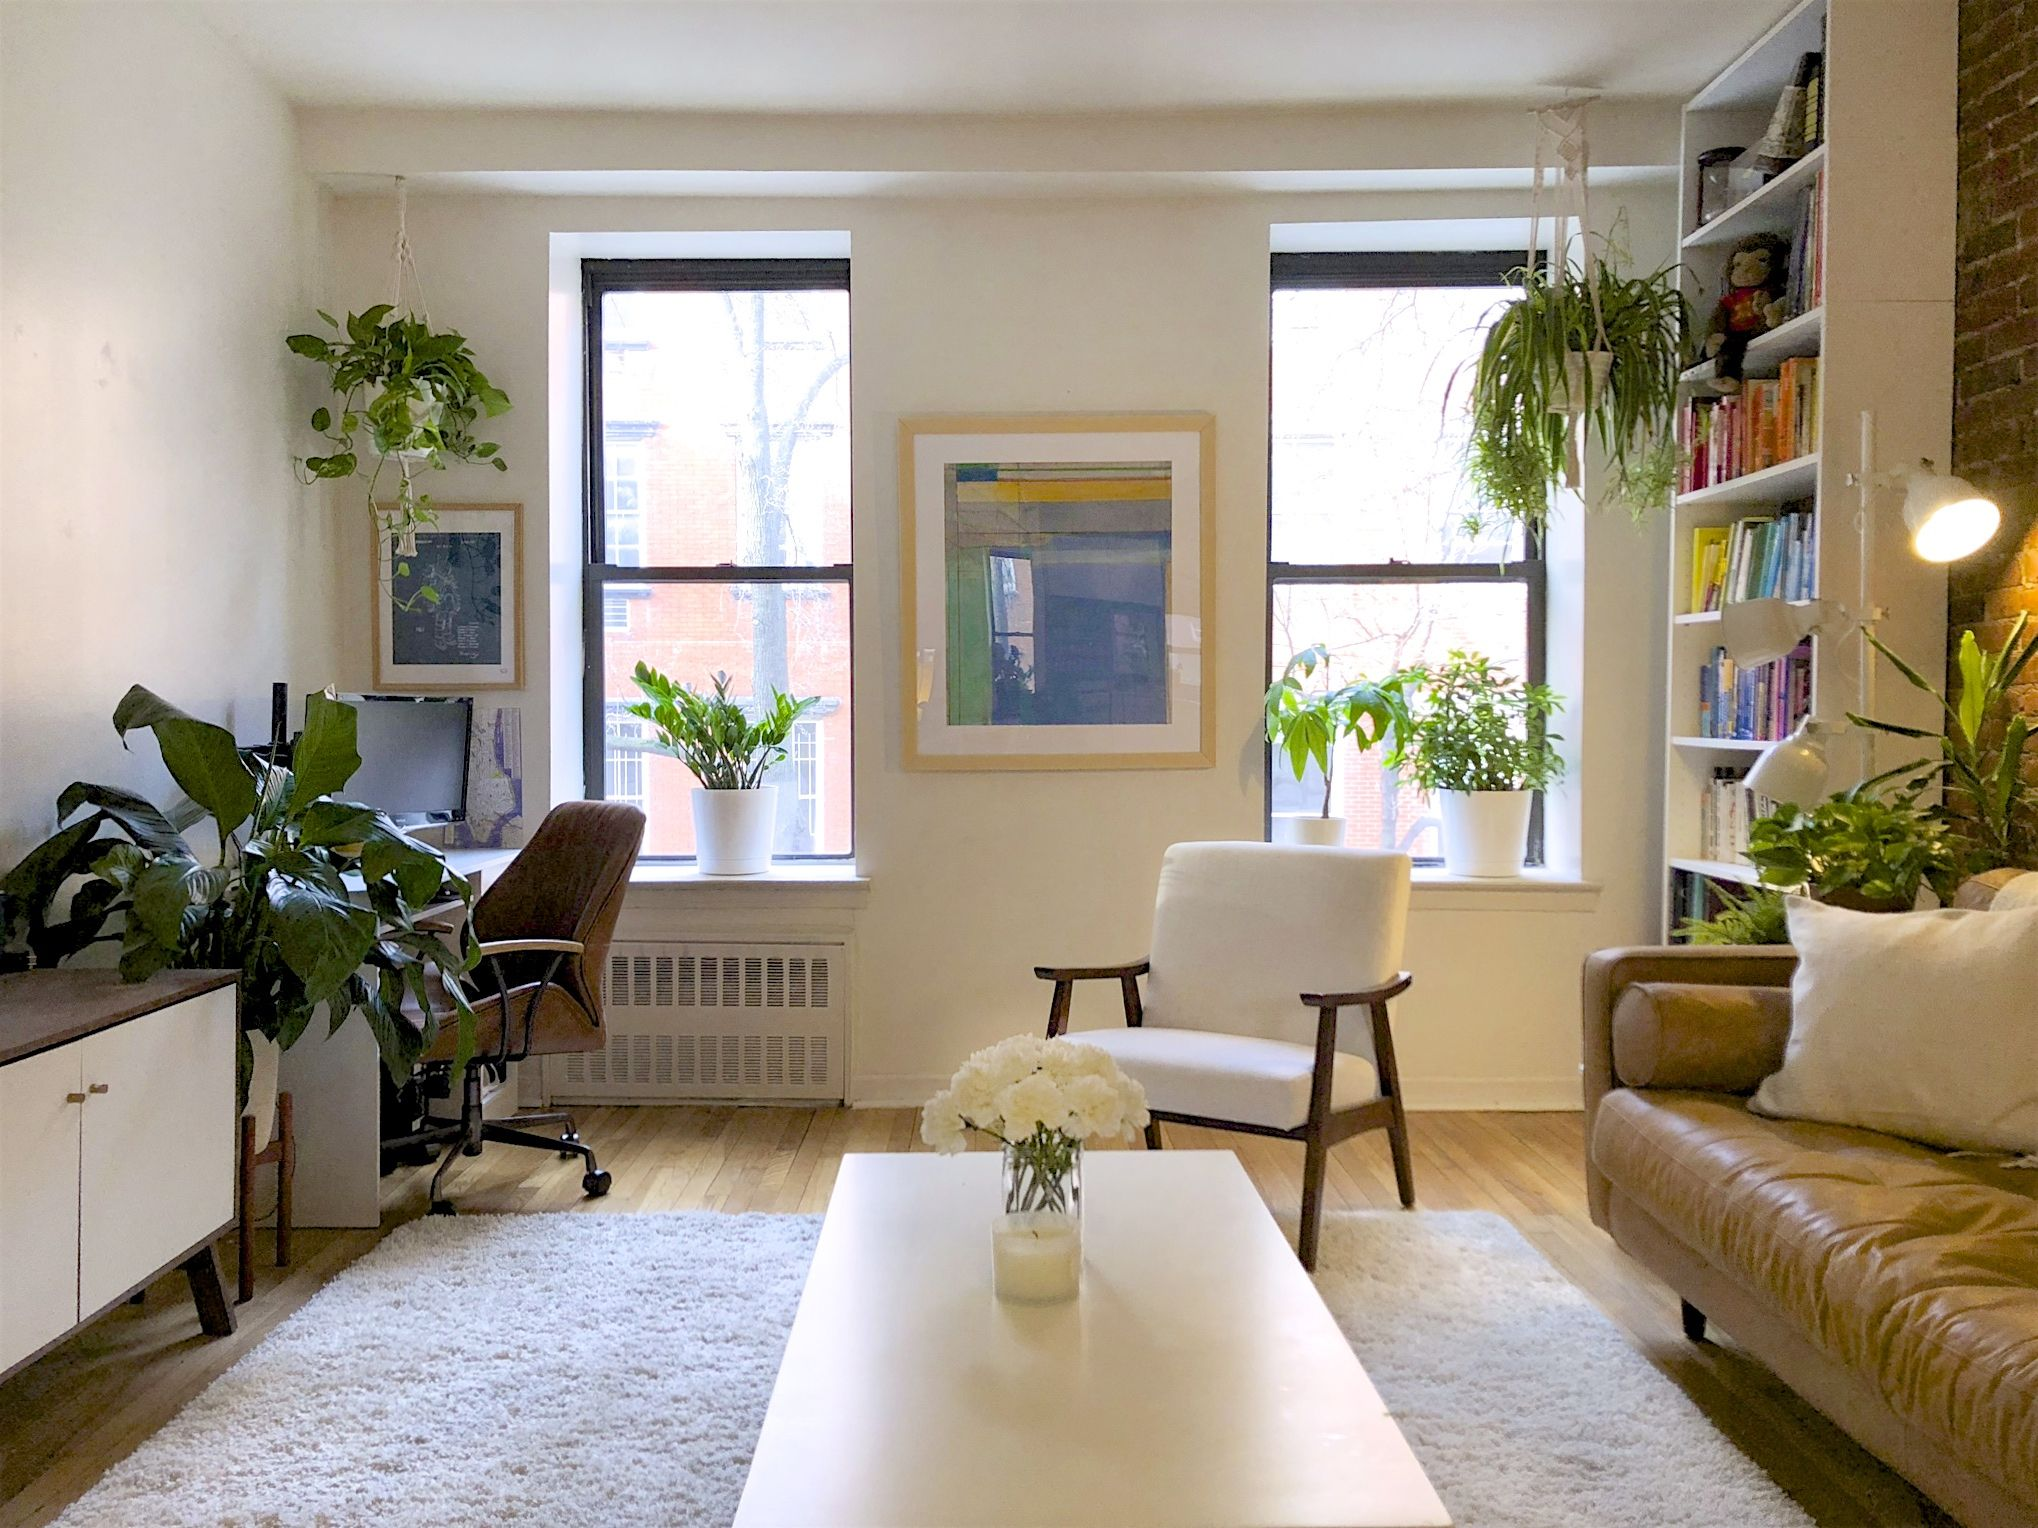 A Small Nyc Apartment Has The Cutest Simple Plant Display Above The Bed Tiny Living Rooms Small Nyc Apartment Minimal Living Room Living room ideas nyc